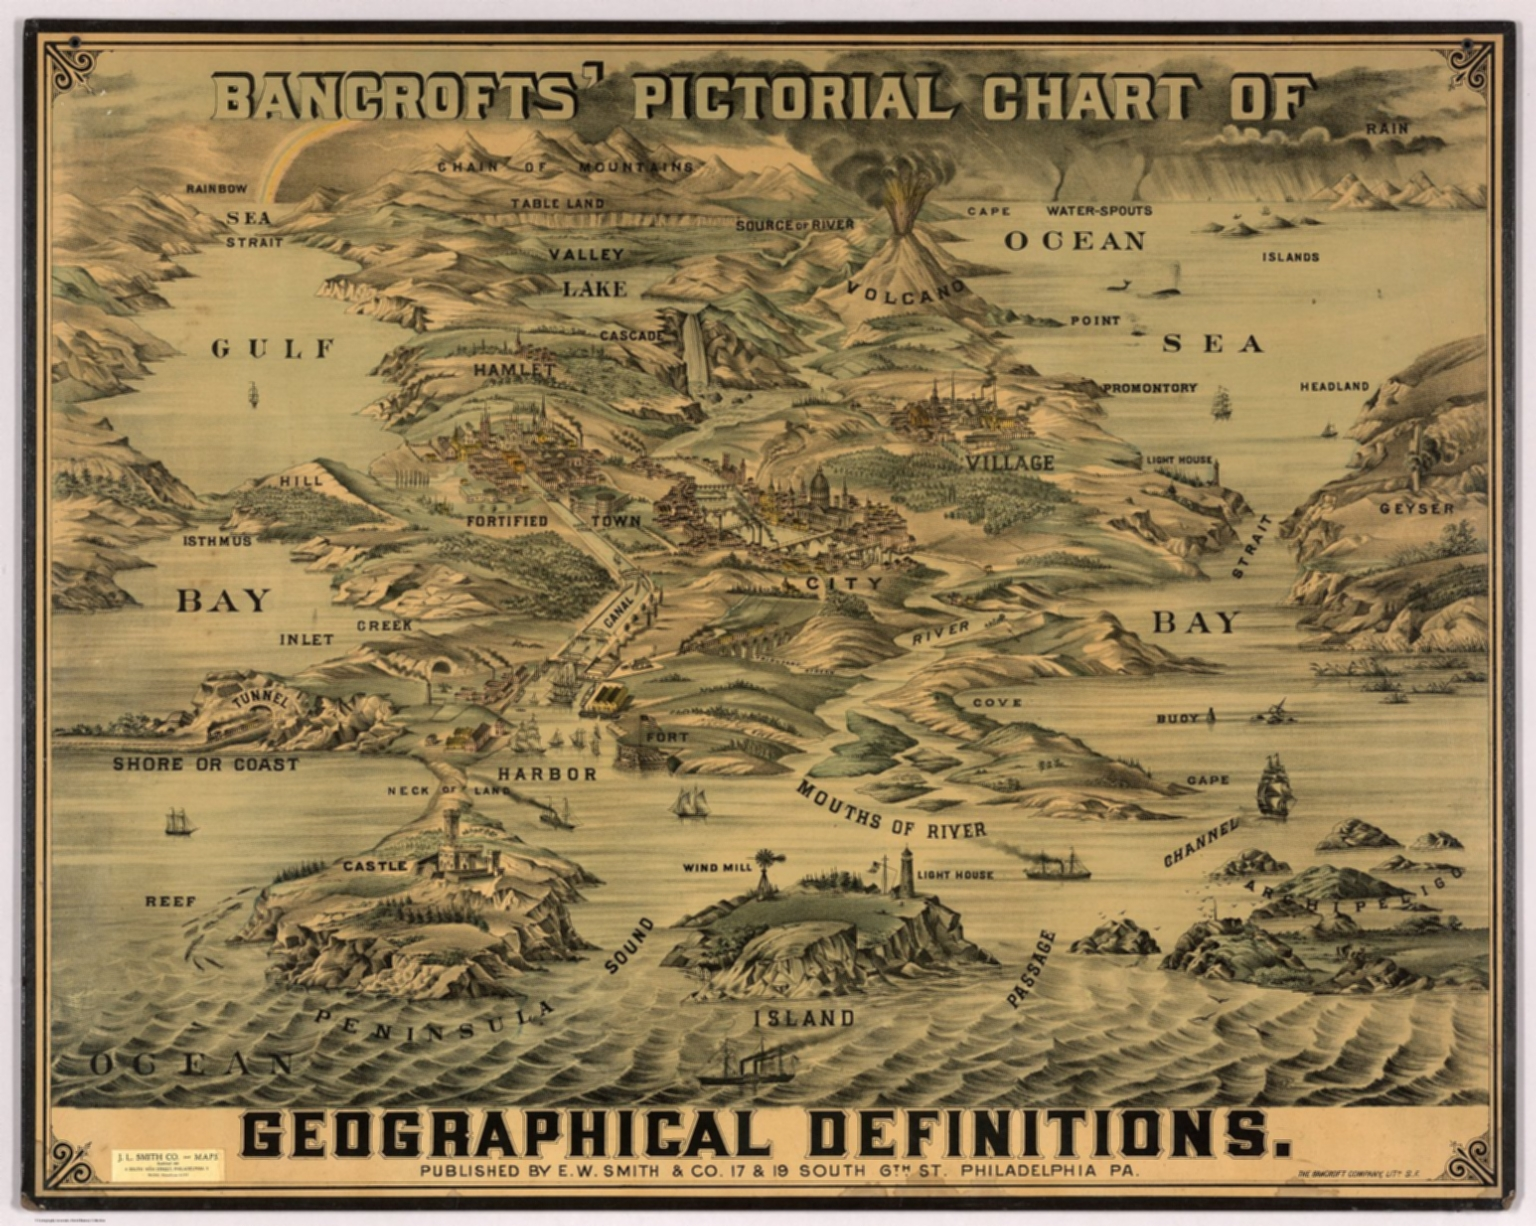 Historical Map Definition Bancrofts' pictorial chart of geographical definition   David